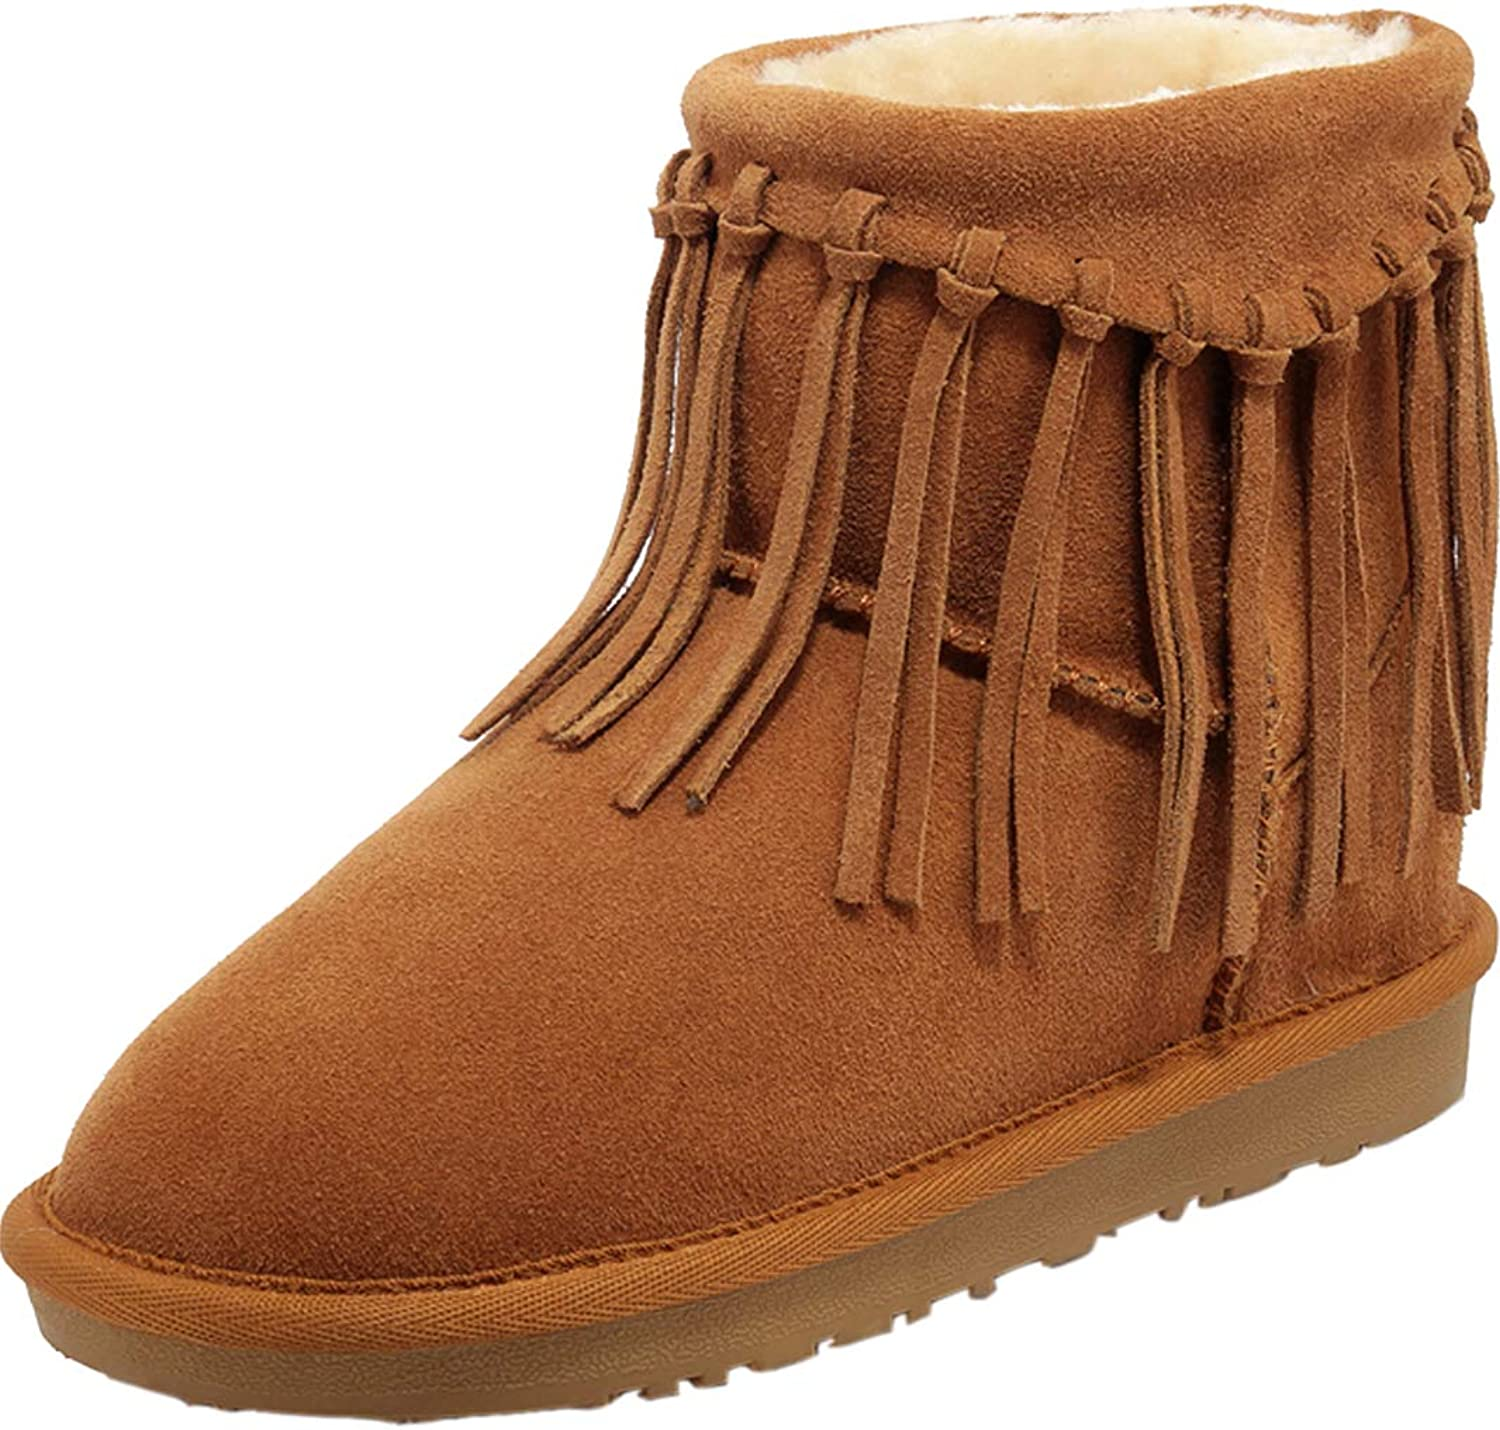 Jushee Womens Juaware cm no-Heel Ankle Pull-on Suede Boots